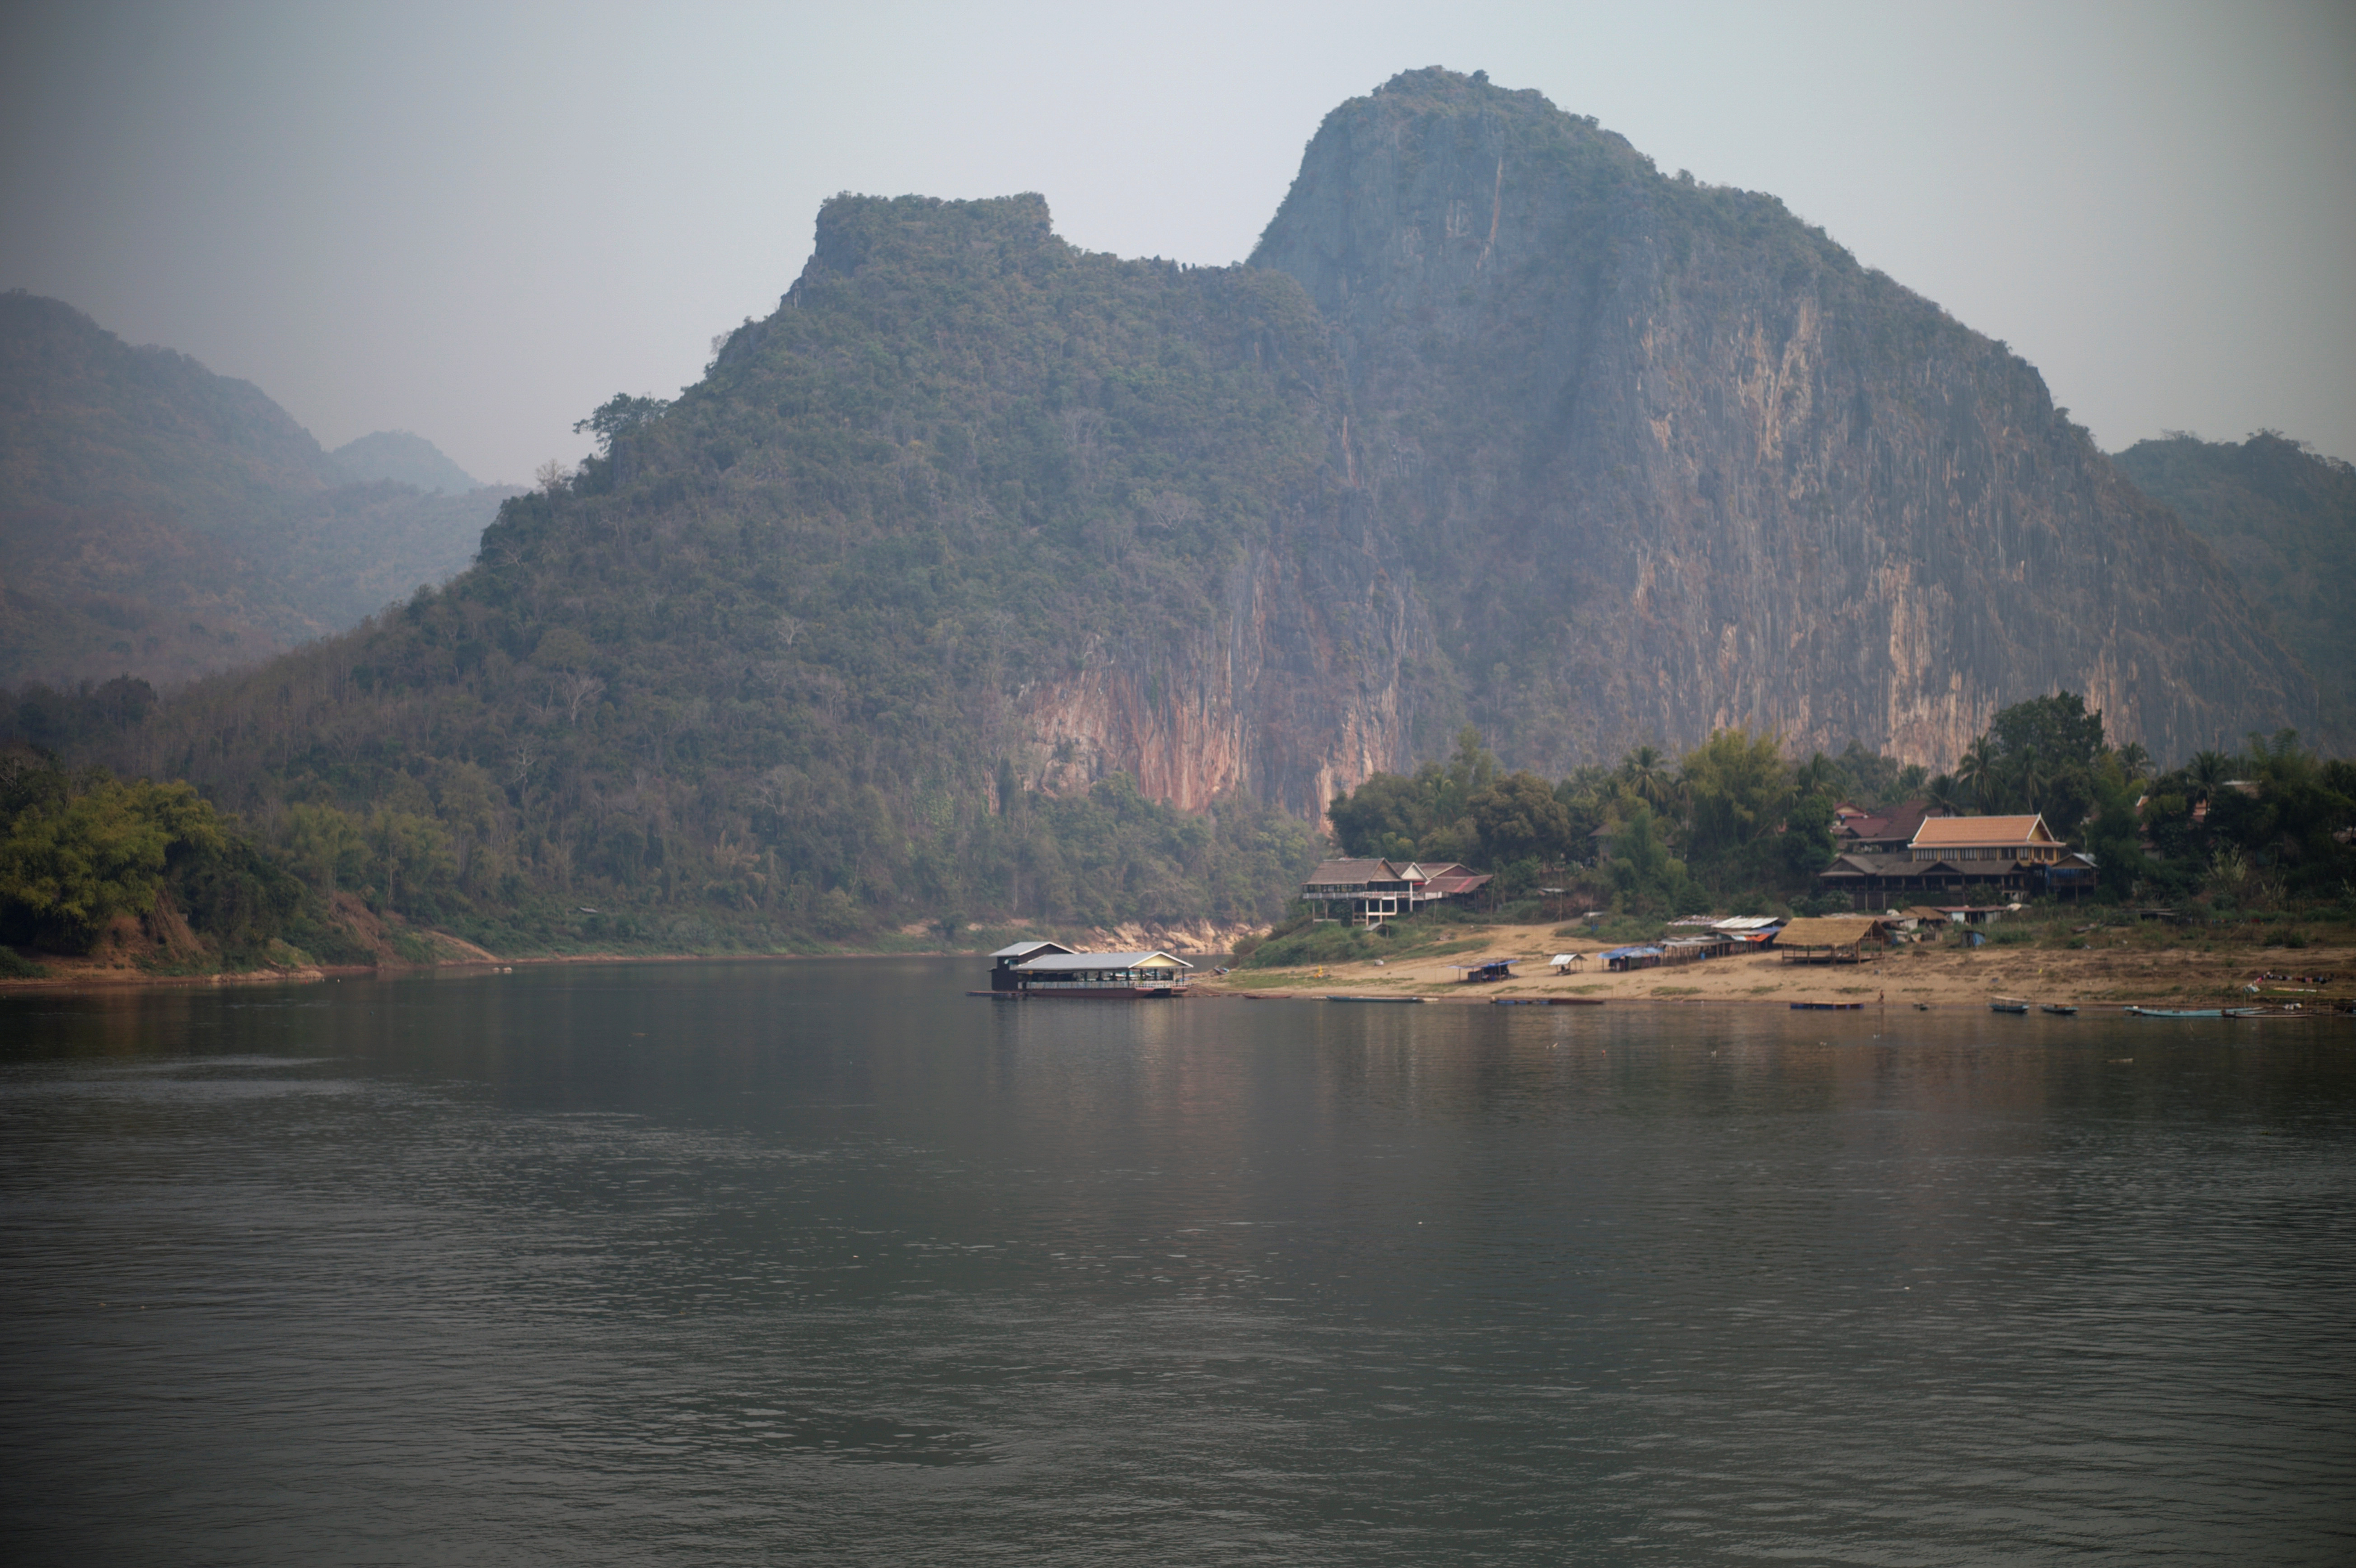 China says will help manage Mekong as report warns of dam danger